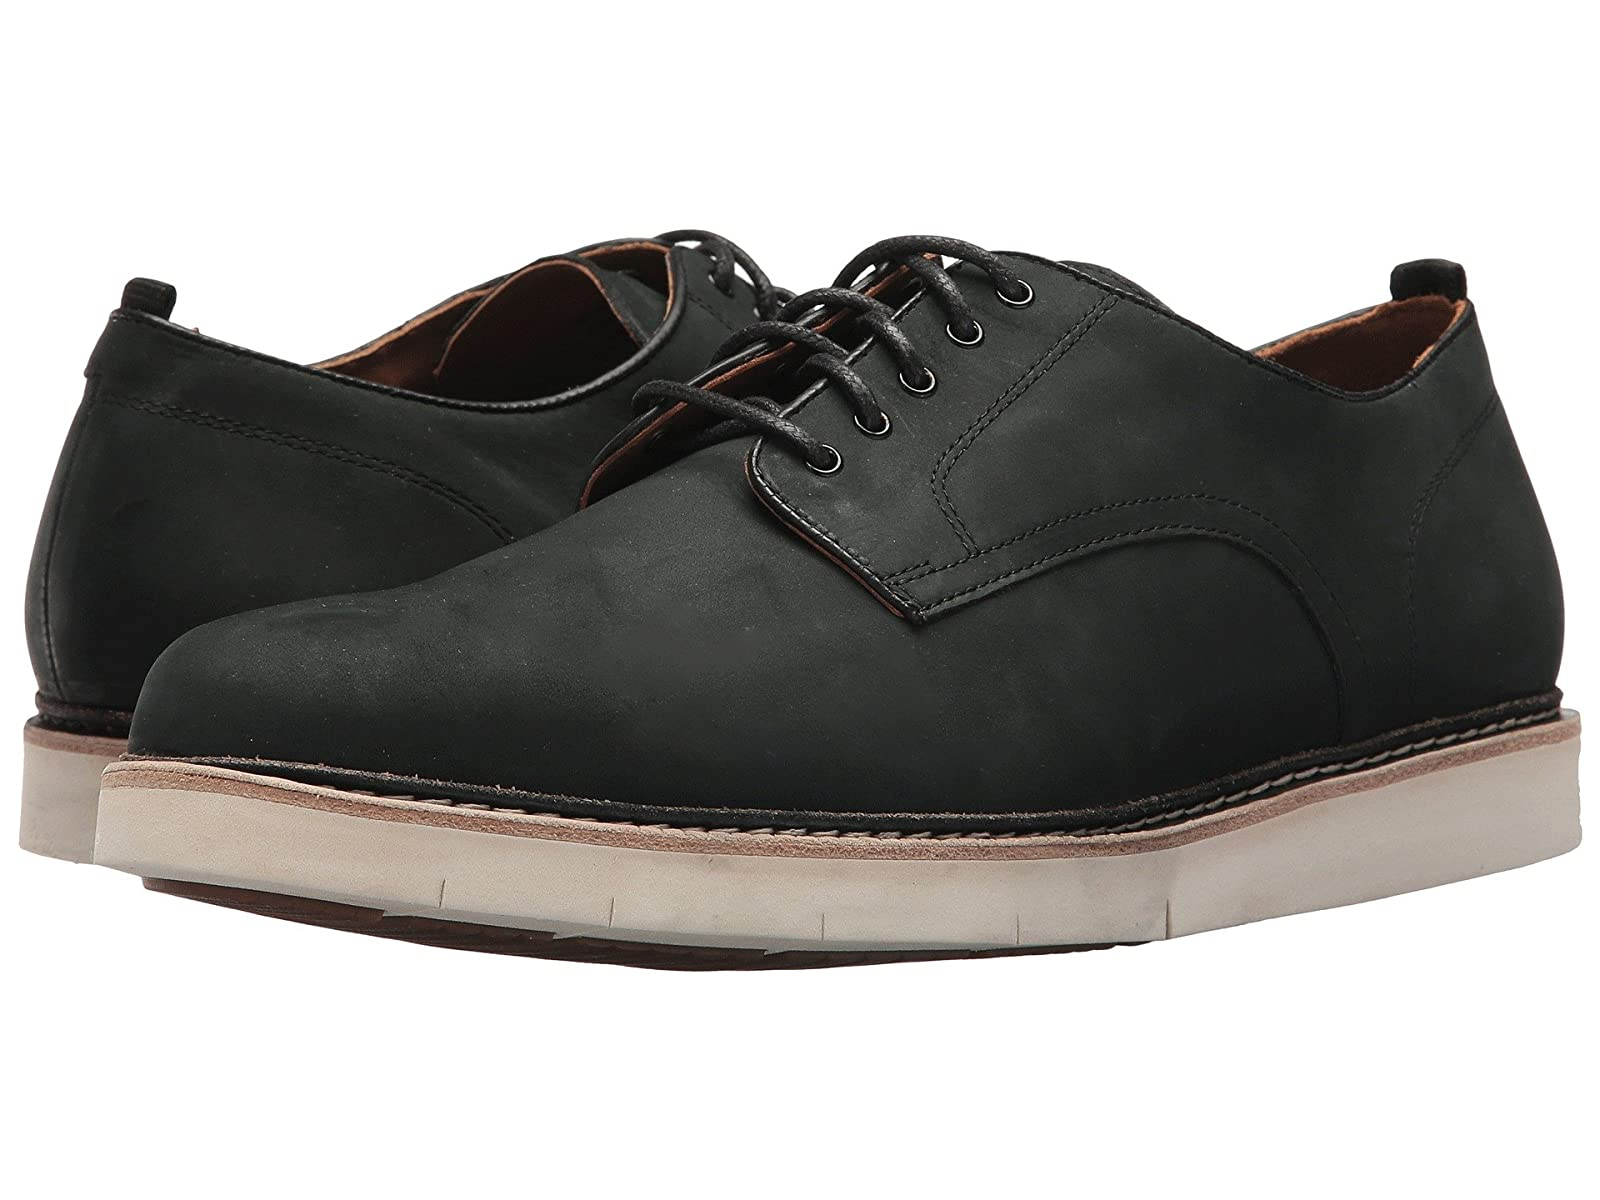 Cole Haan Tanner Plain OxCheap and distinctive eye-catching shoes